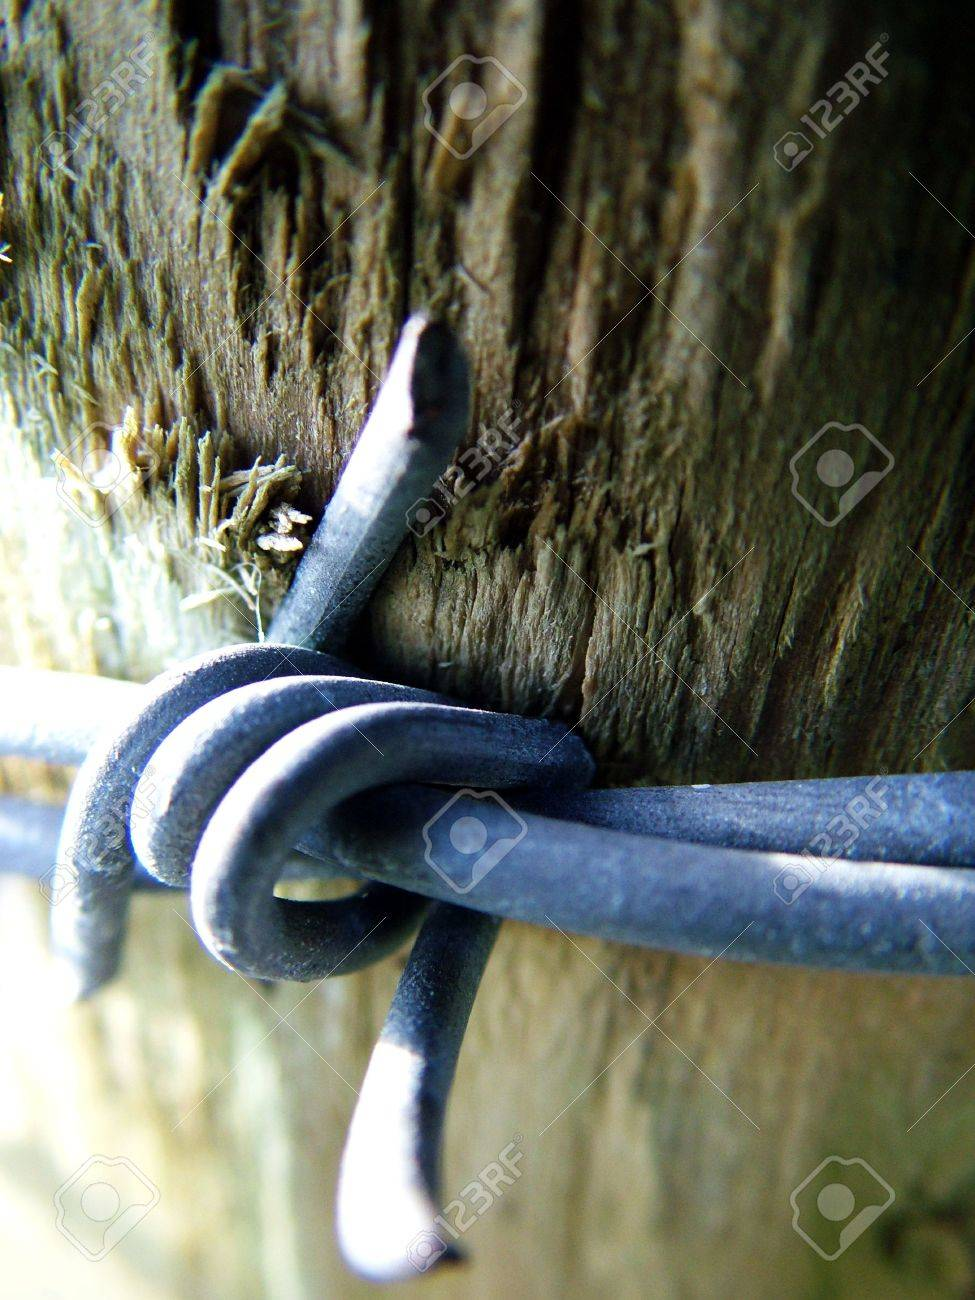 Barbed wire Stock Photo - 368189